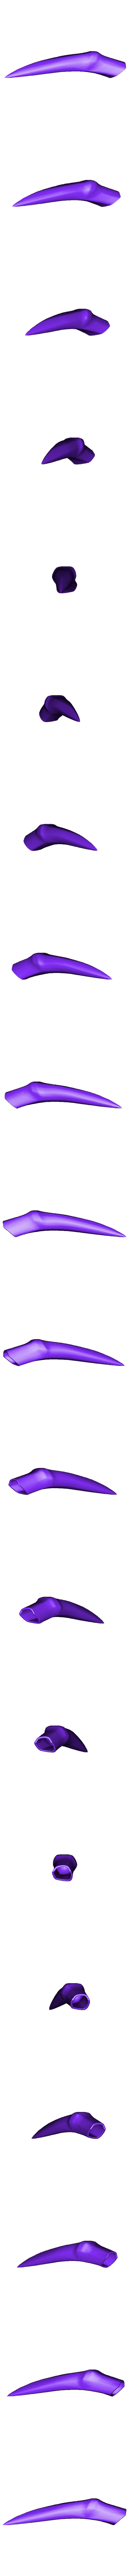 thumb.left.mk.1.stl Download free STL file Left 4 Dead Witch Bride Cosplay Claws • Object to 3D print, AlbertKhan3D